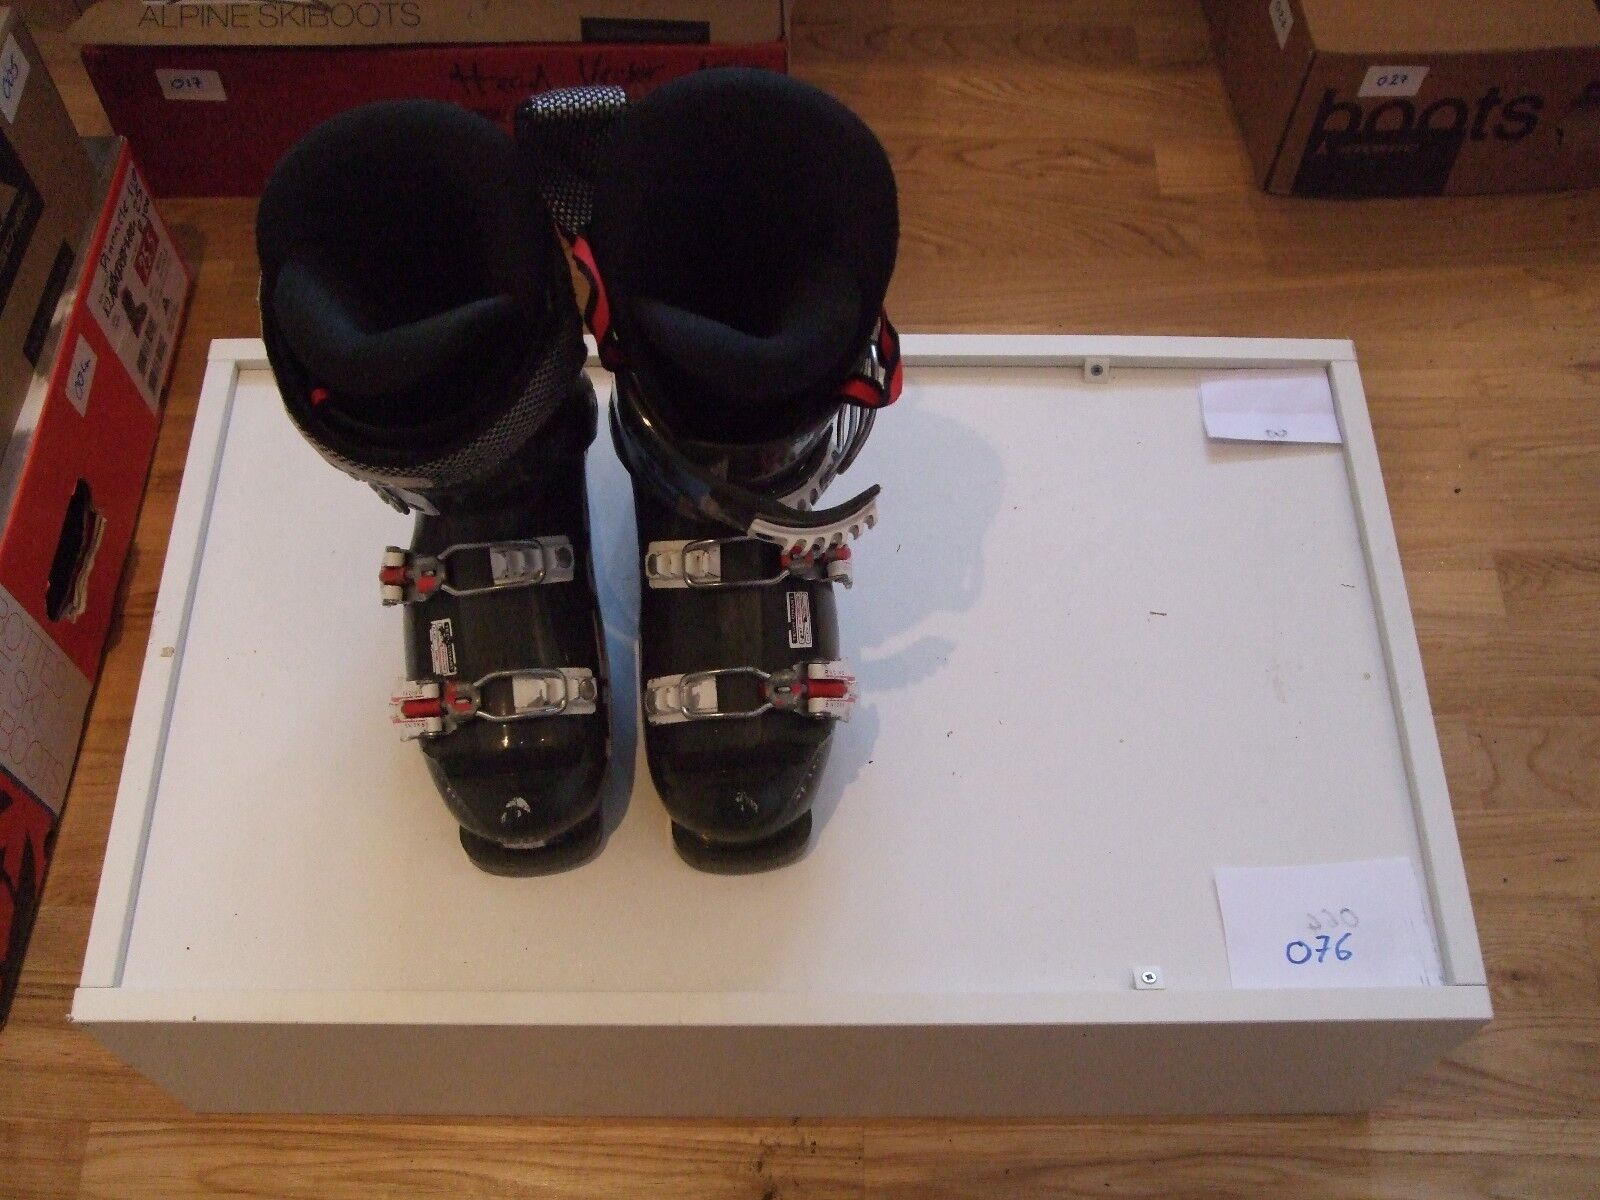 Head  Raptor 90 Ski Boots (size 24.5)  save up to 70% discount